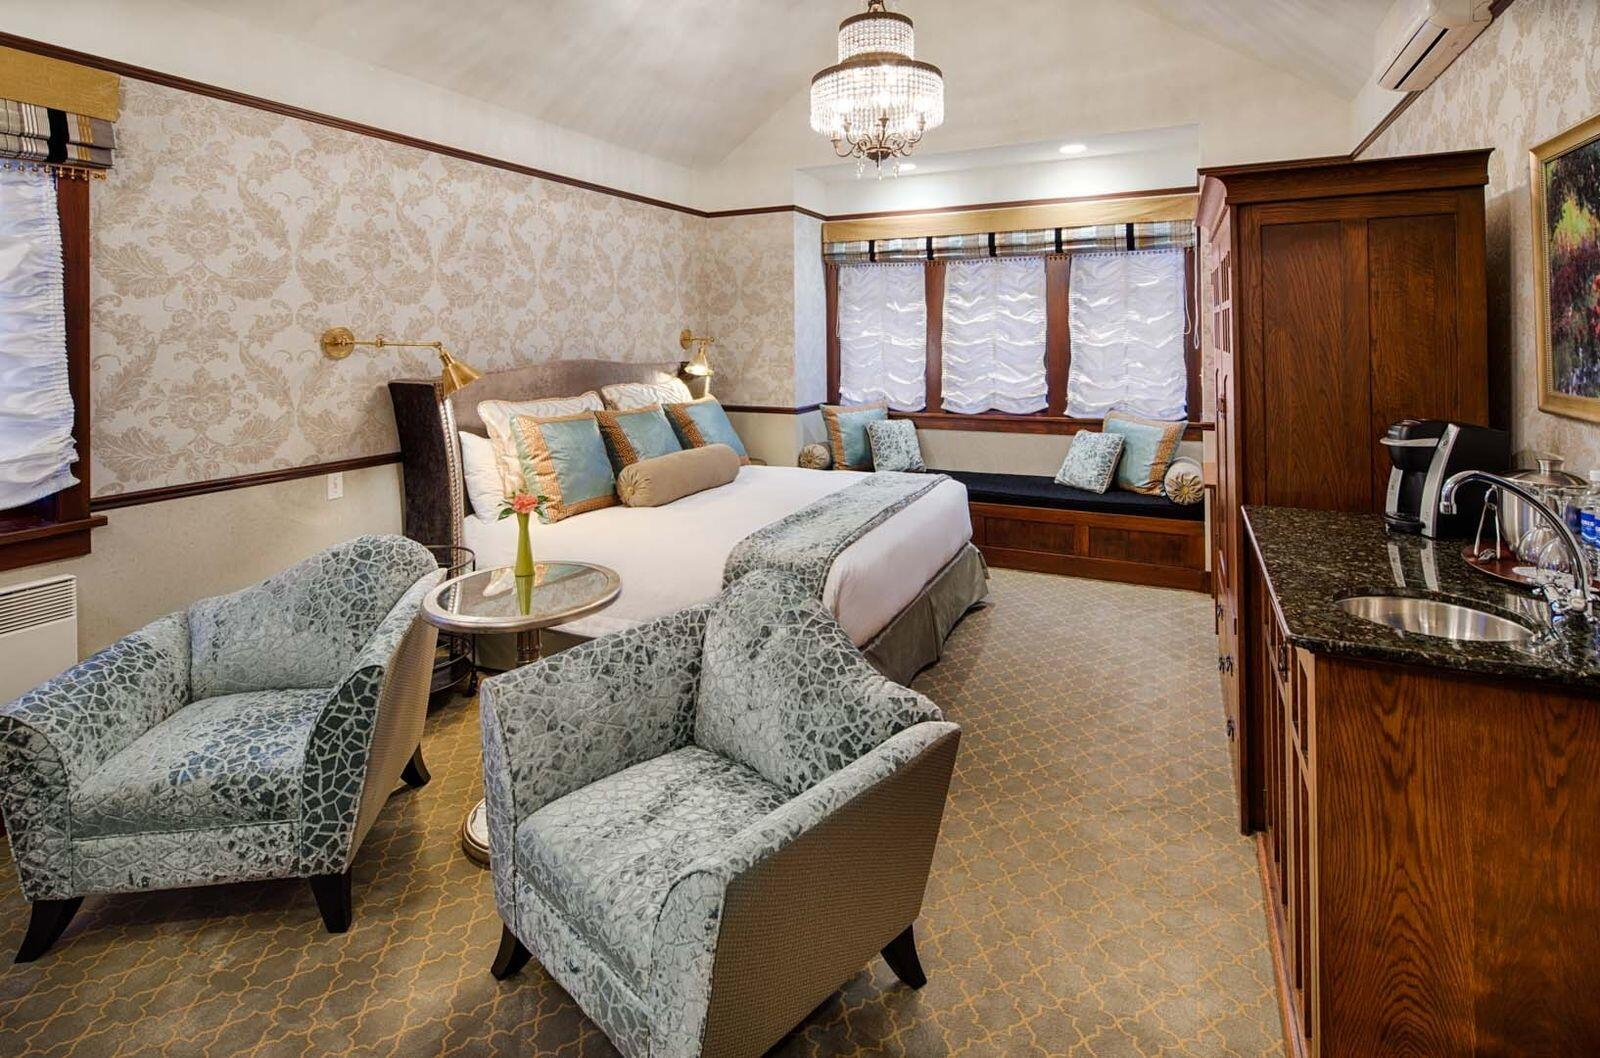 Two accent chairs by wet bar and king bed